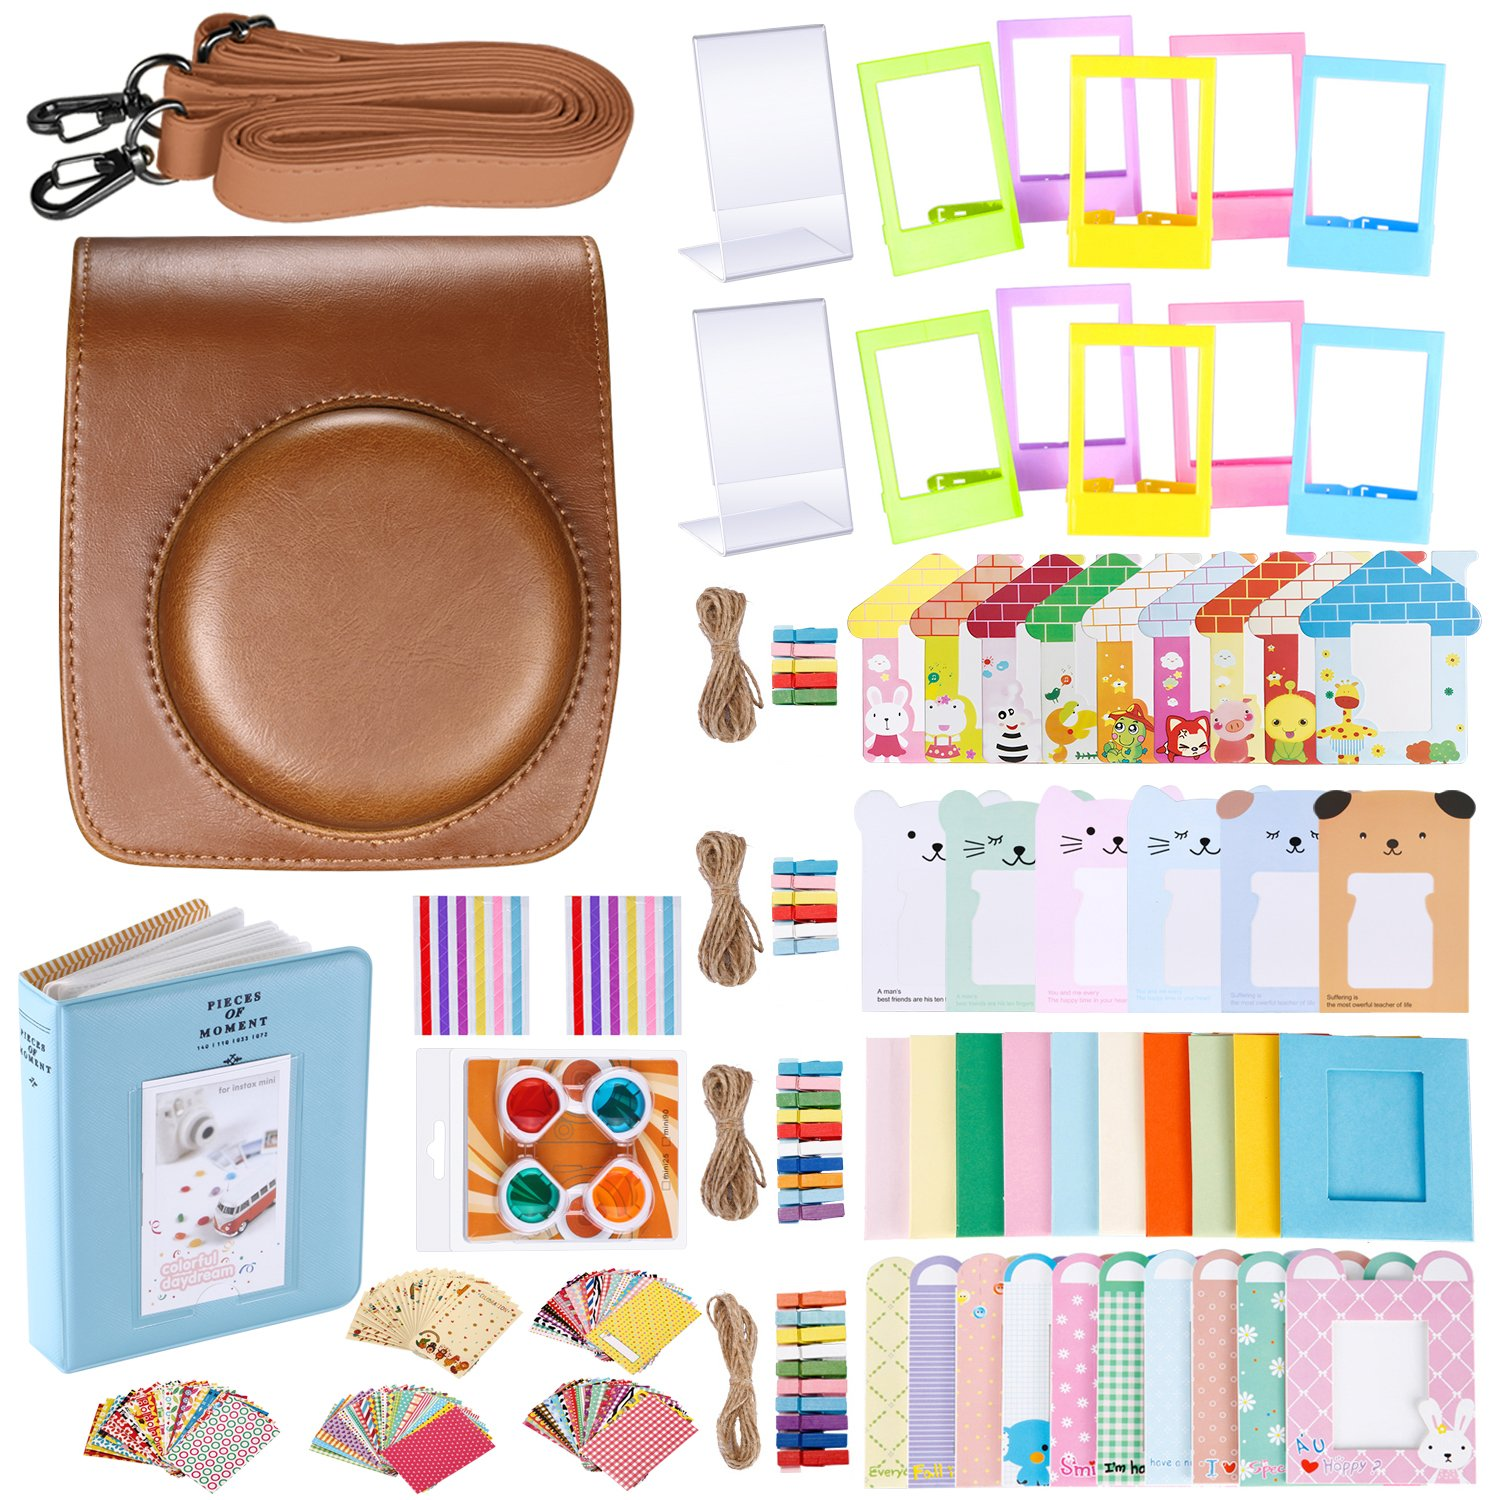 Neewer 56-in-1 Accessory Kit for Fujifilm Instax Mini 90 (Brown), Includes: Camera Case with Adjustable Strap, Various Frames, Book Album, Close-up Lens, Corner Stickers, Photo Instant Films Stickers 10088957